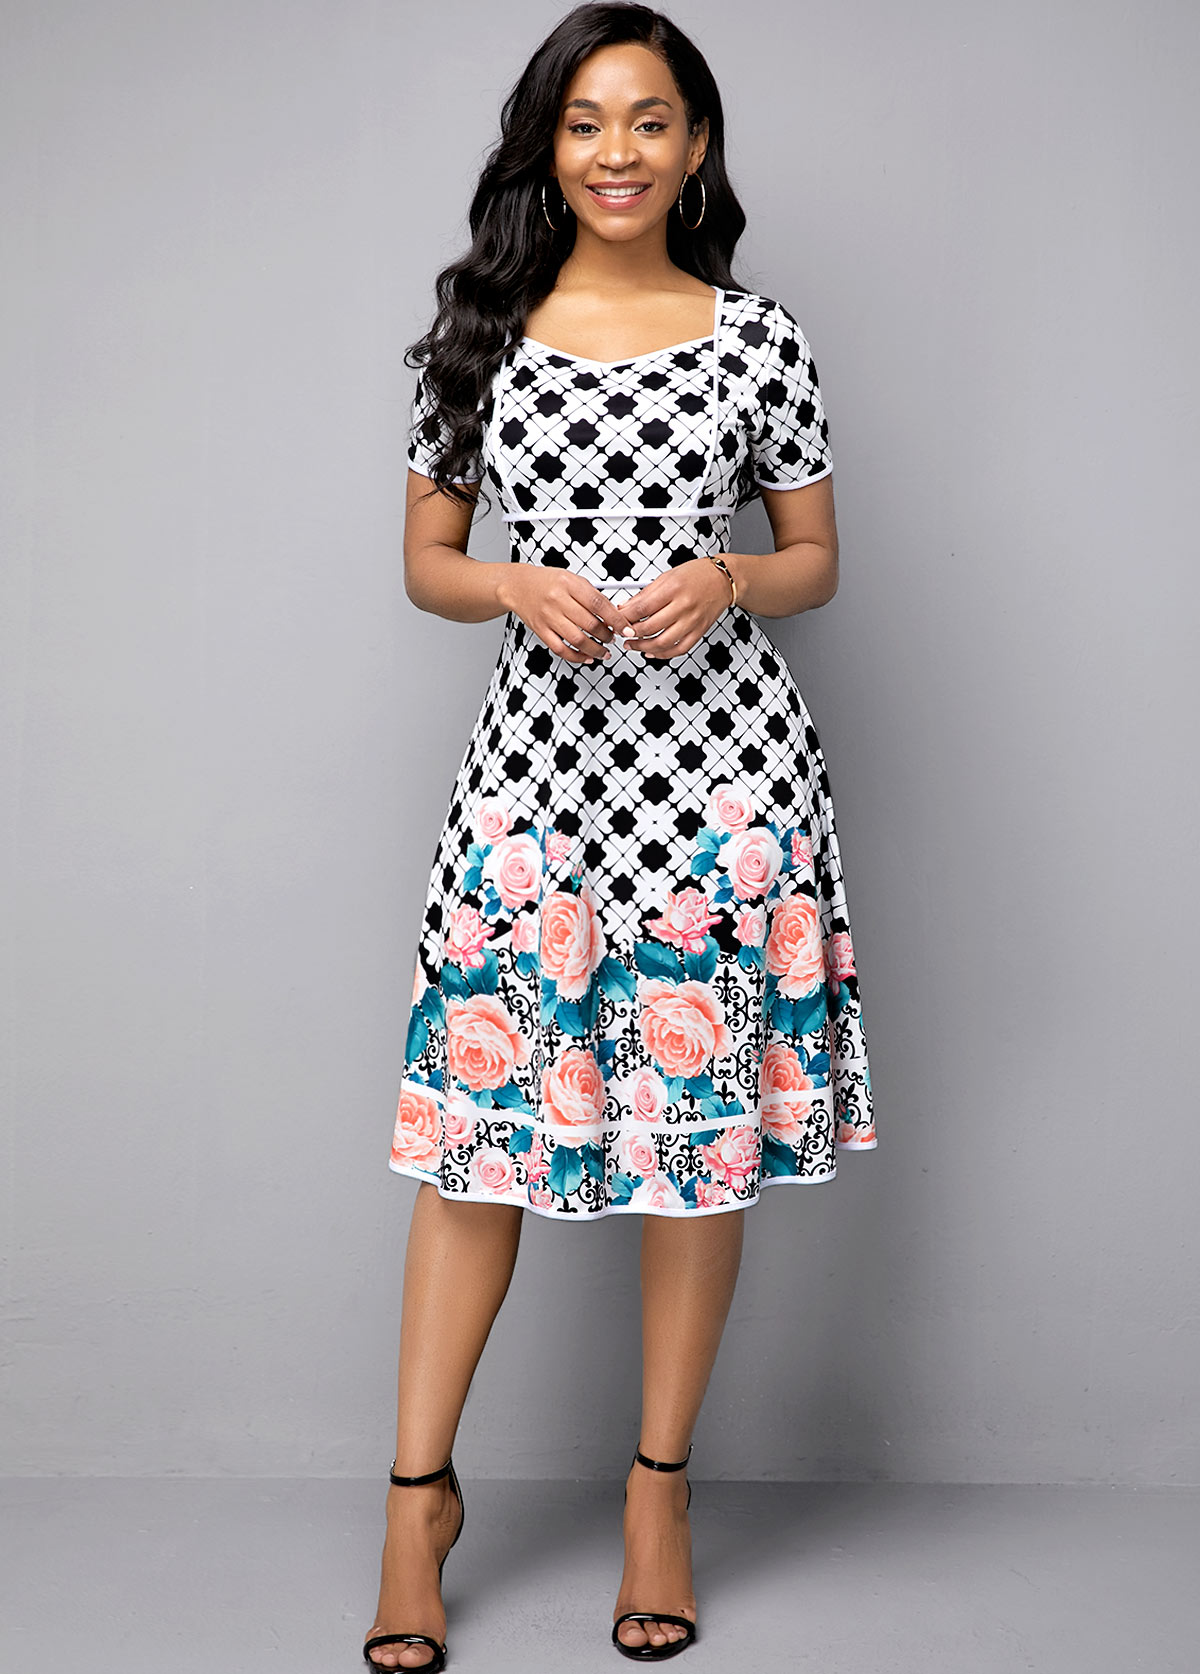 ROTITA Short Sleeve High Waist Flower Print Dress